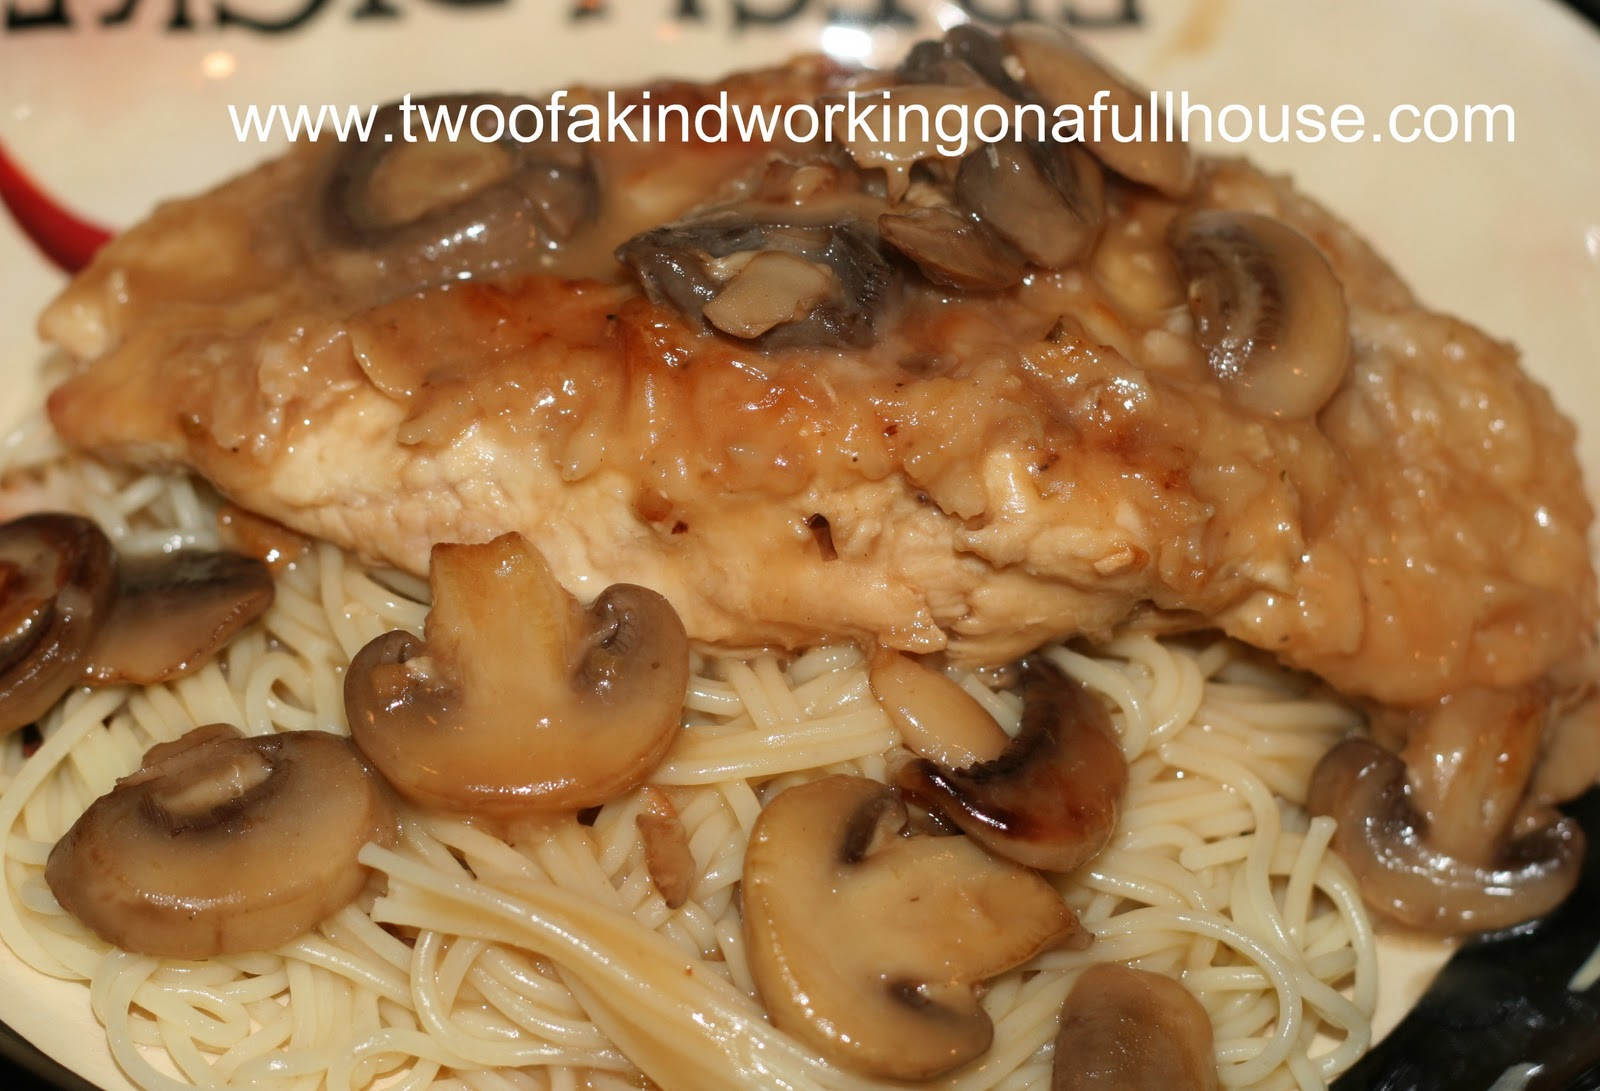 Chicken Marsala Recipe | Two of a kind, working on a full house